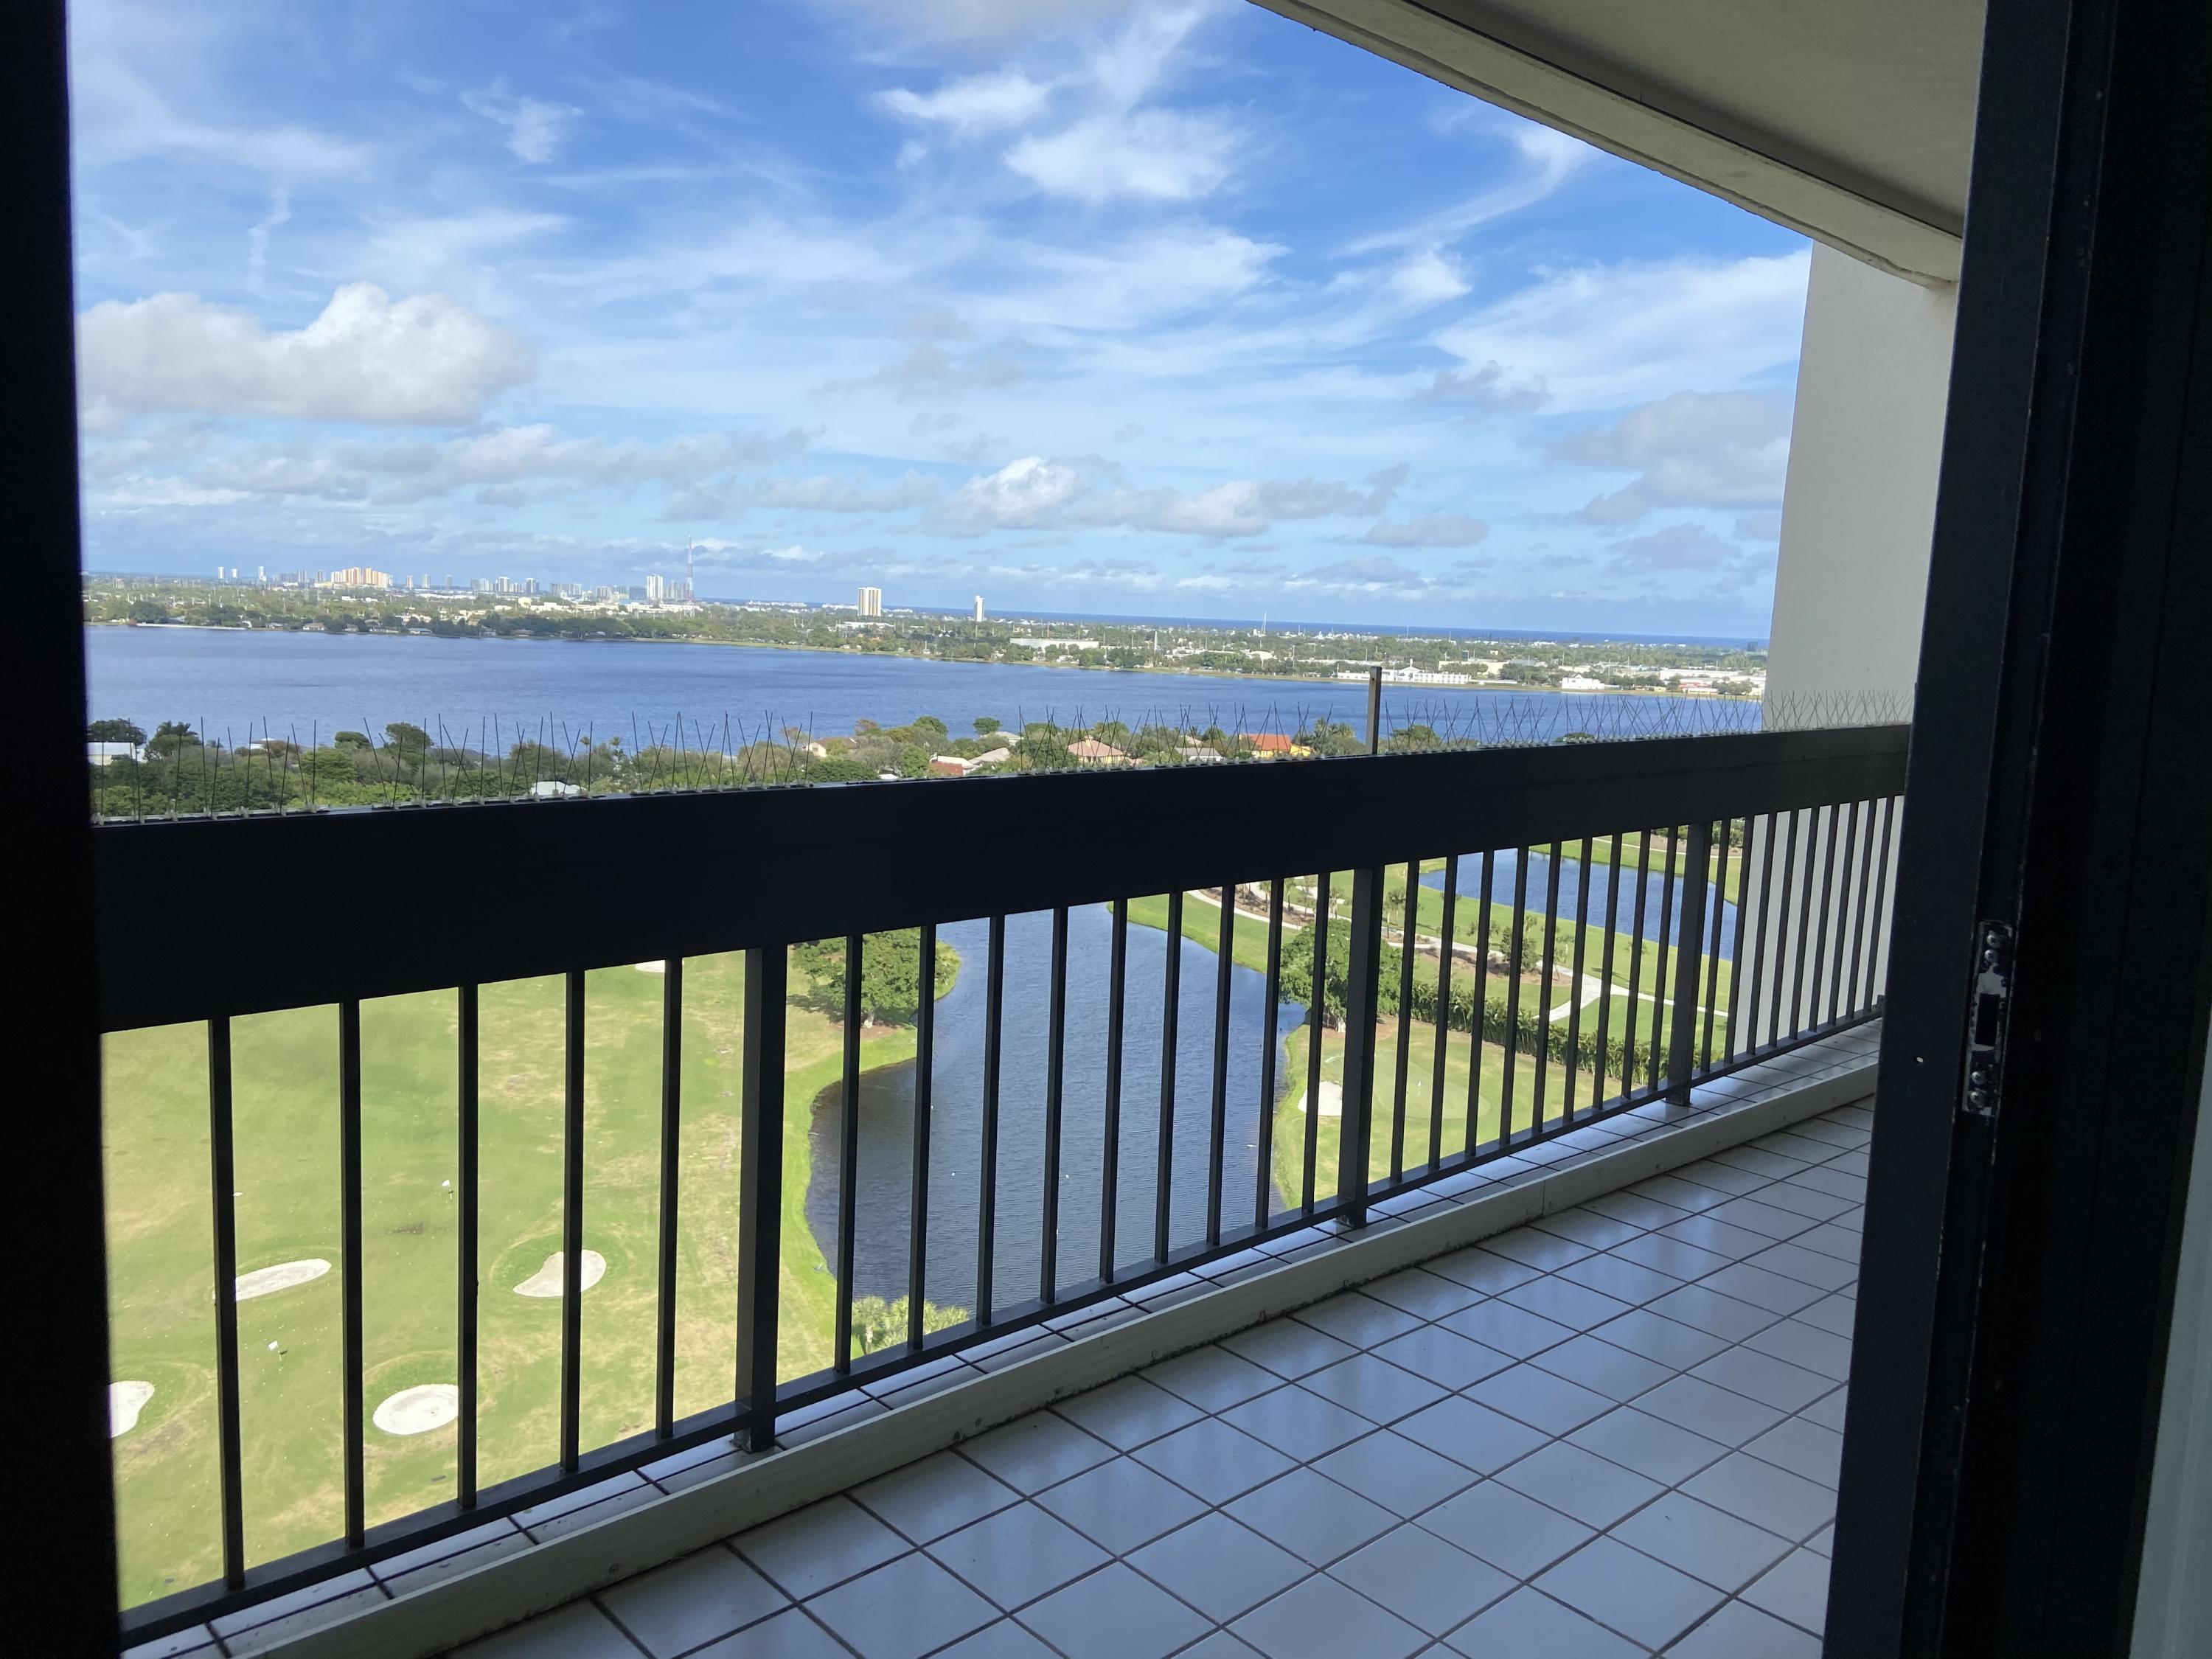 2000 Presidential Unit Ph2, West Palm Beach, Florida 33401